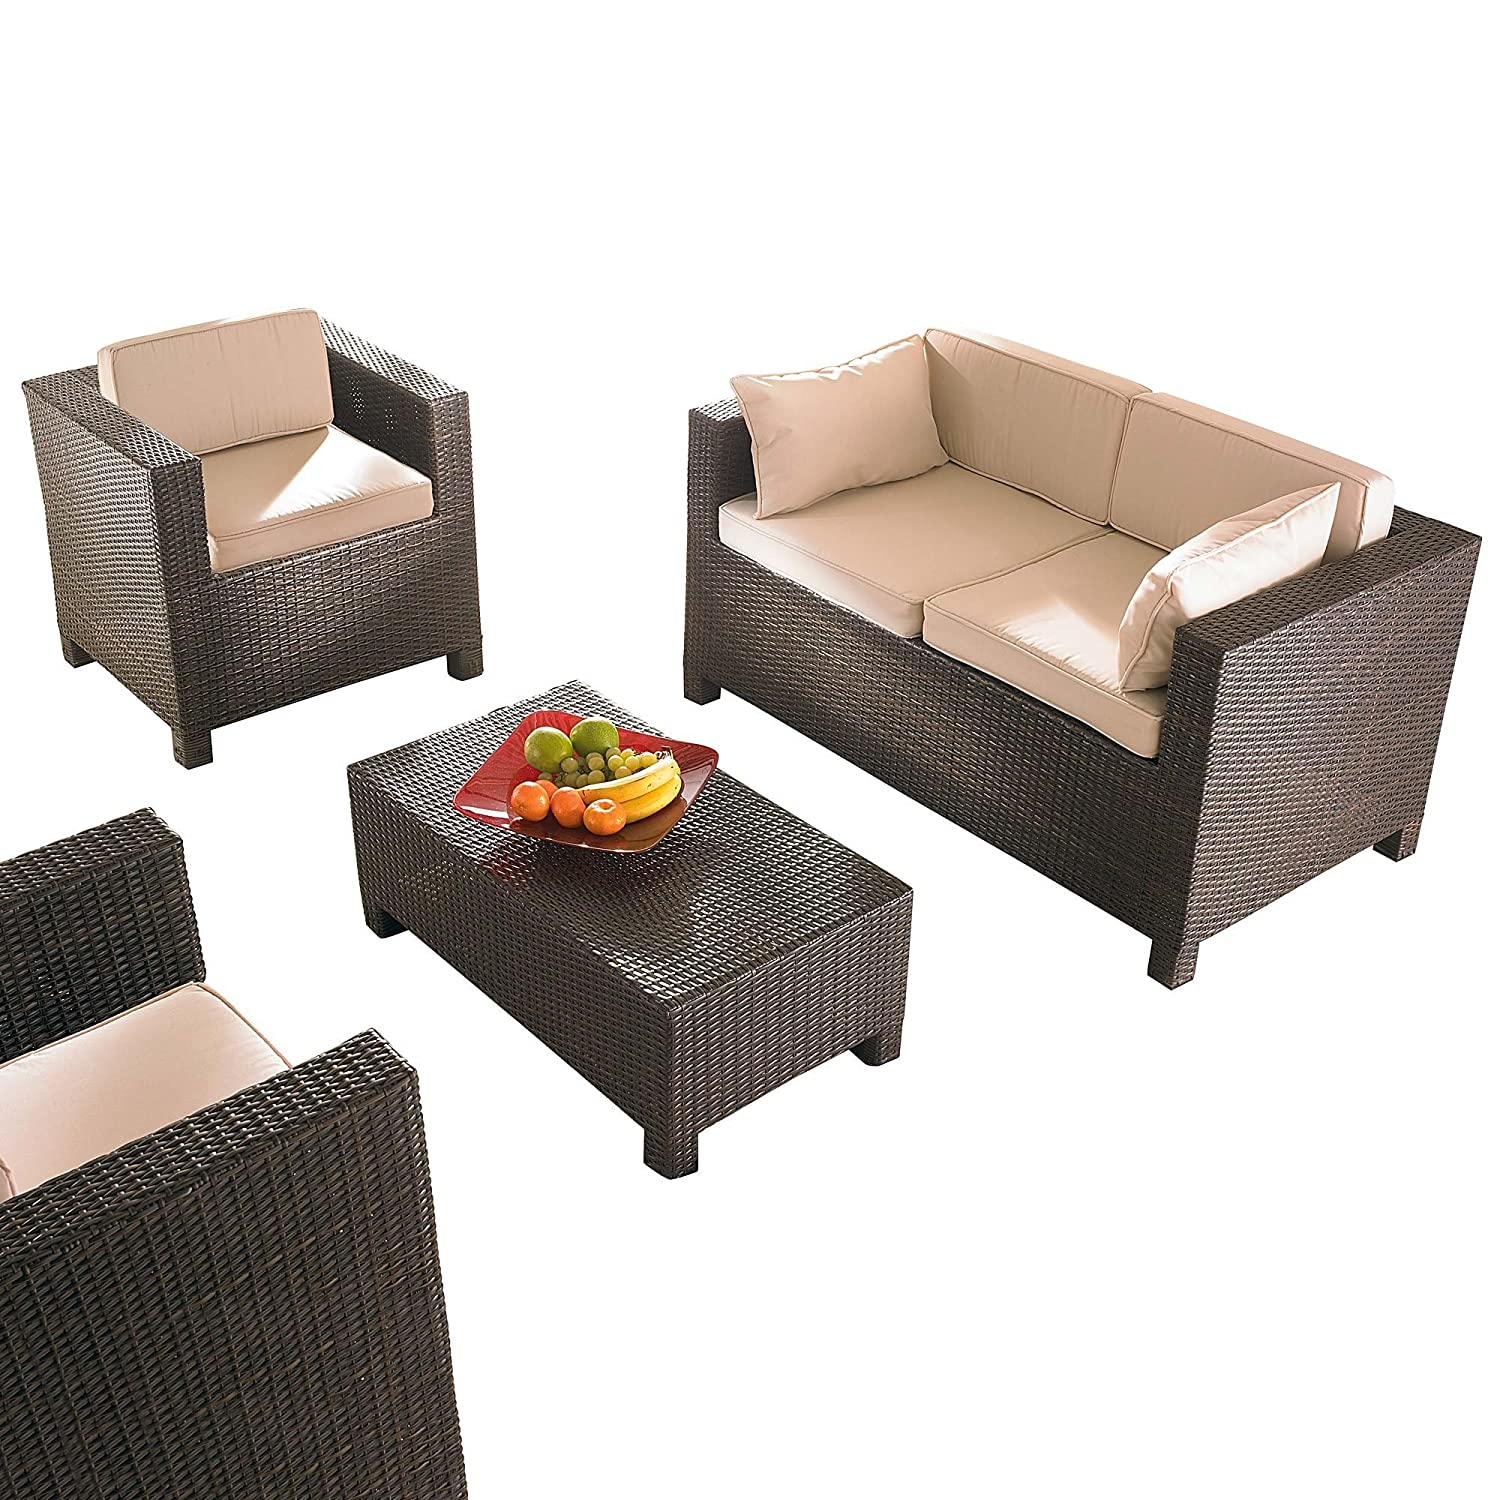 gartenm bel set cube inklusive 2 sessel 1 couch und 1 tisch braun 4 teilig jetzt bestellen. Black Bedroom Furniture Sets. Home Design Ideas